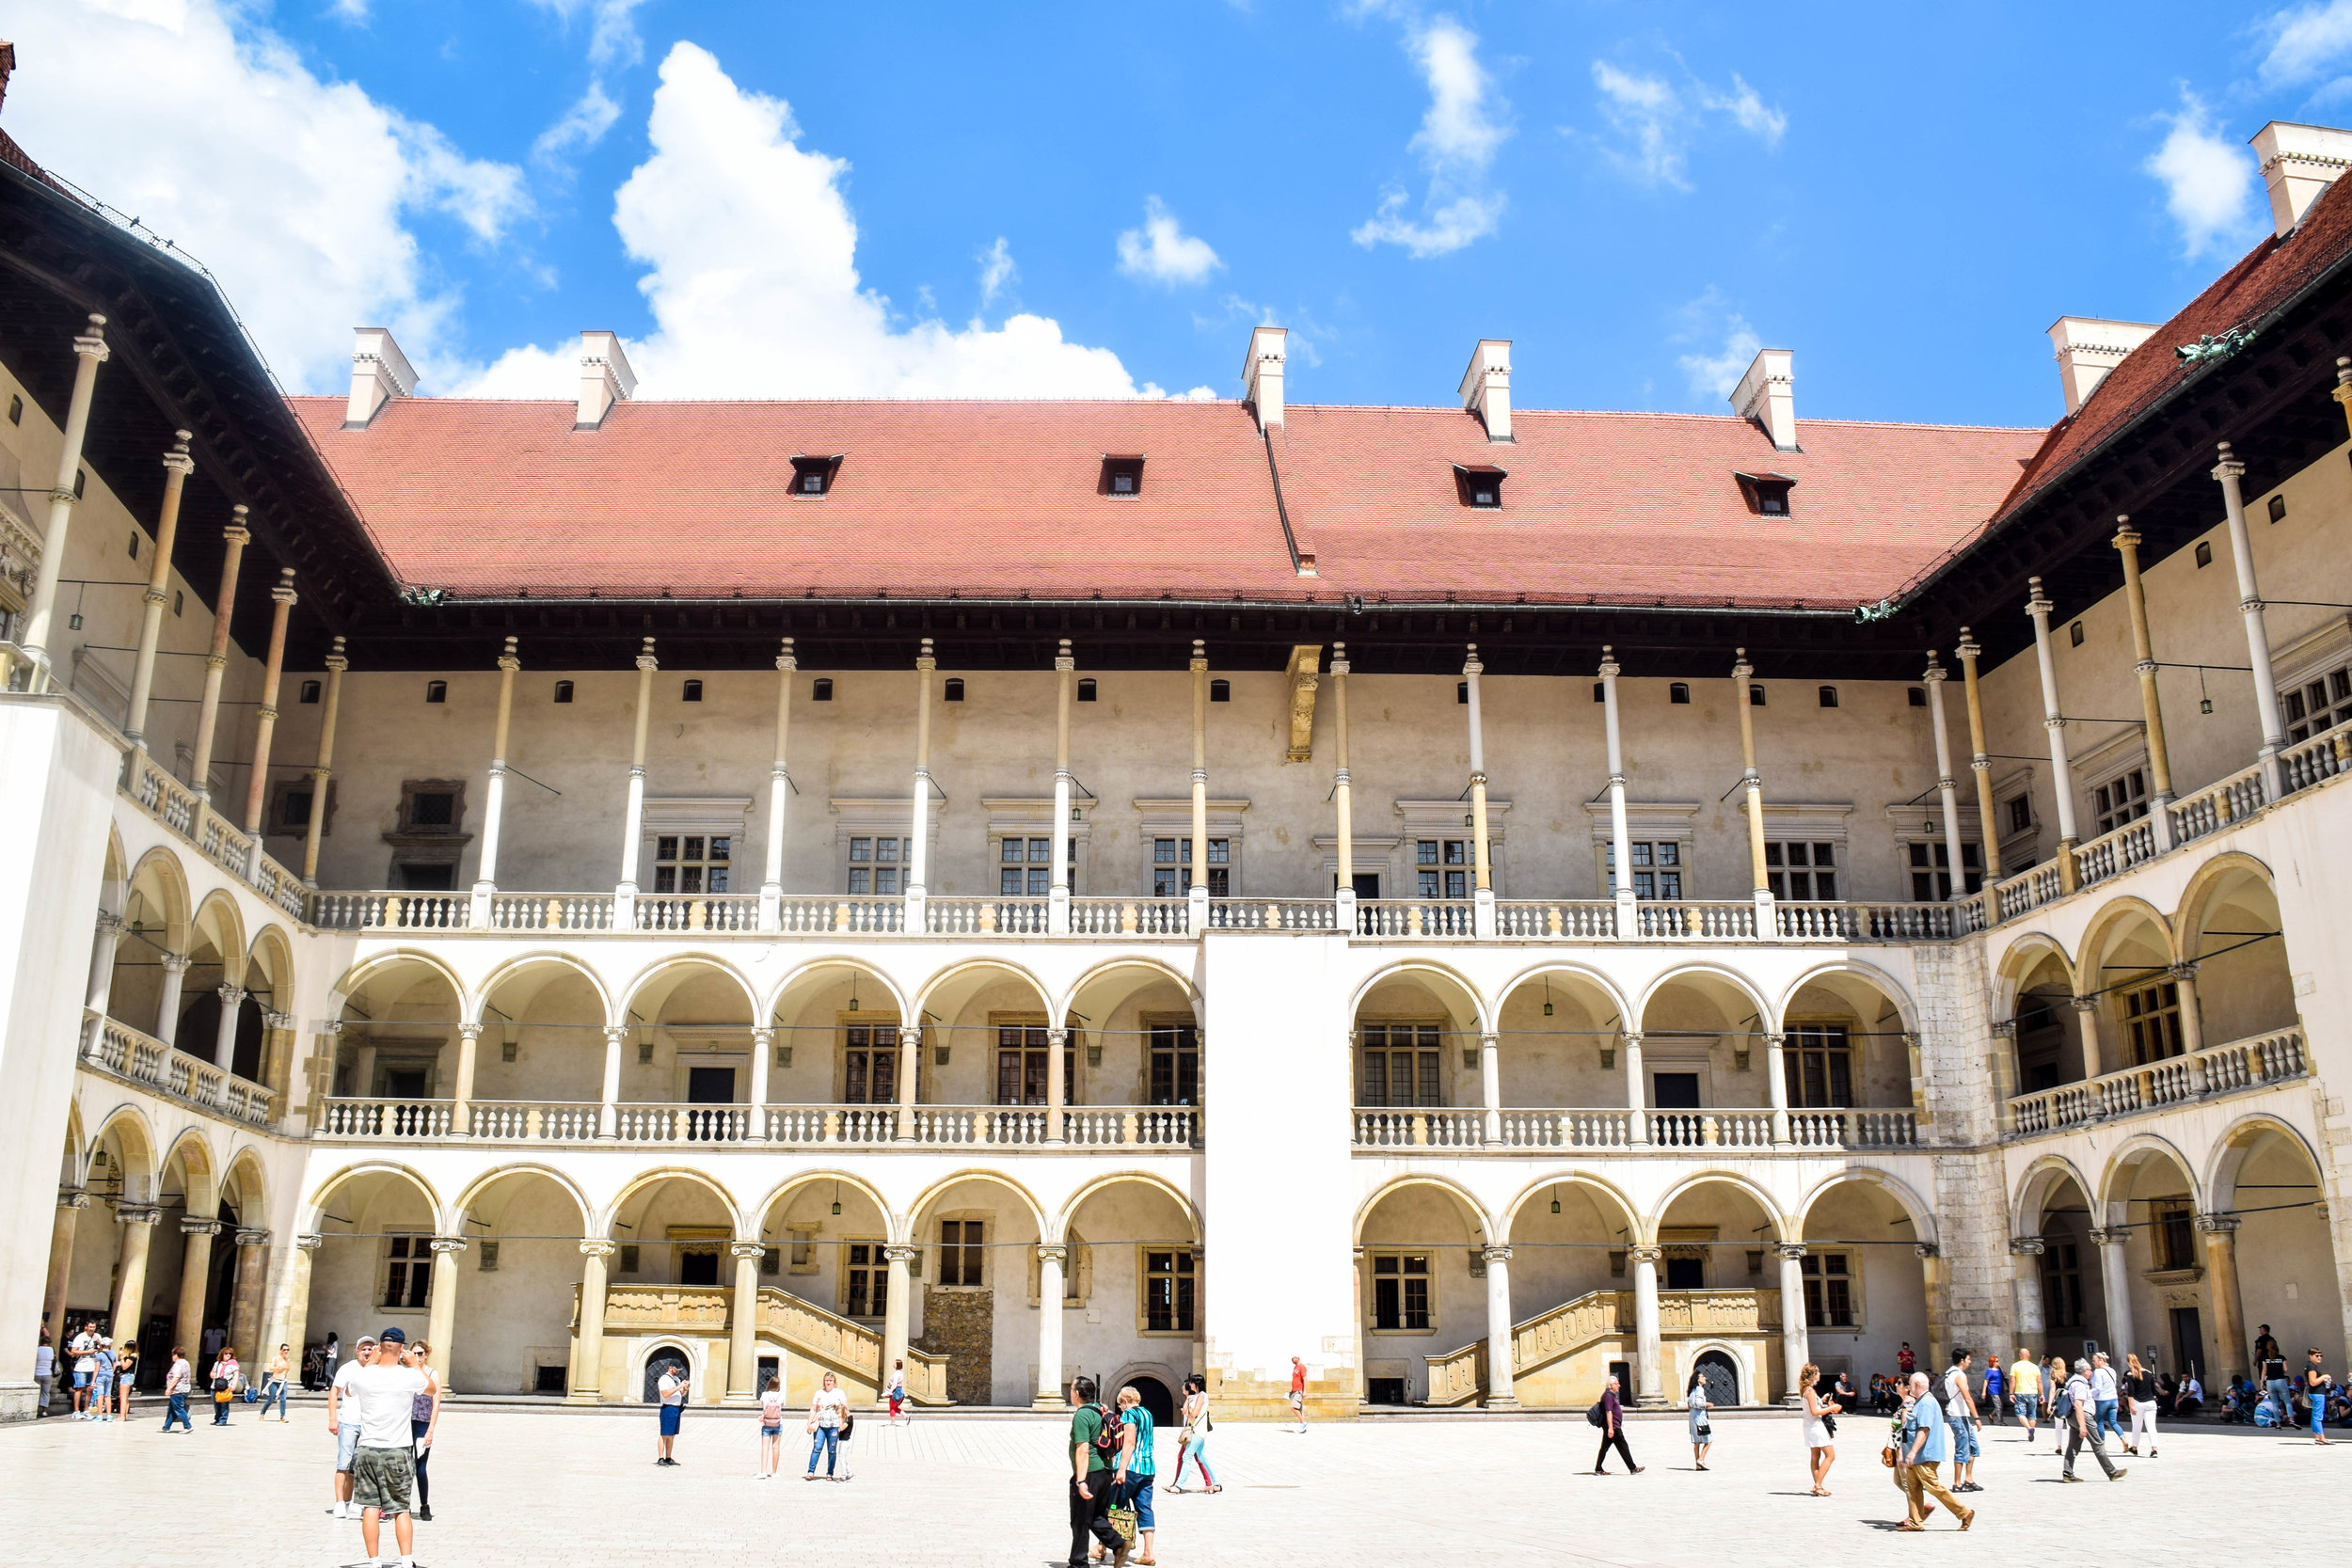 The architecture in Krakow has so many different influences, this building inside Wawel Castle makes you feel like you're in an Italian Renaissance palace